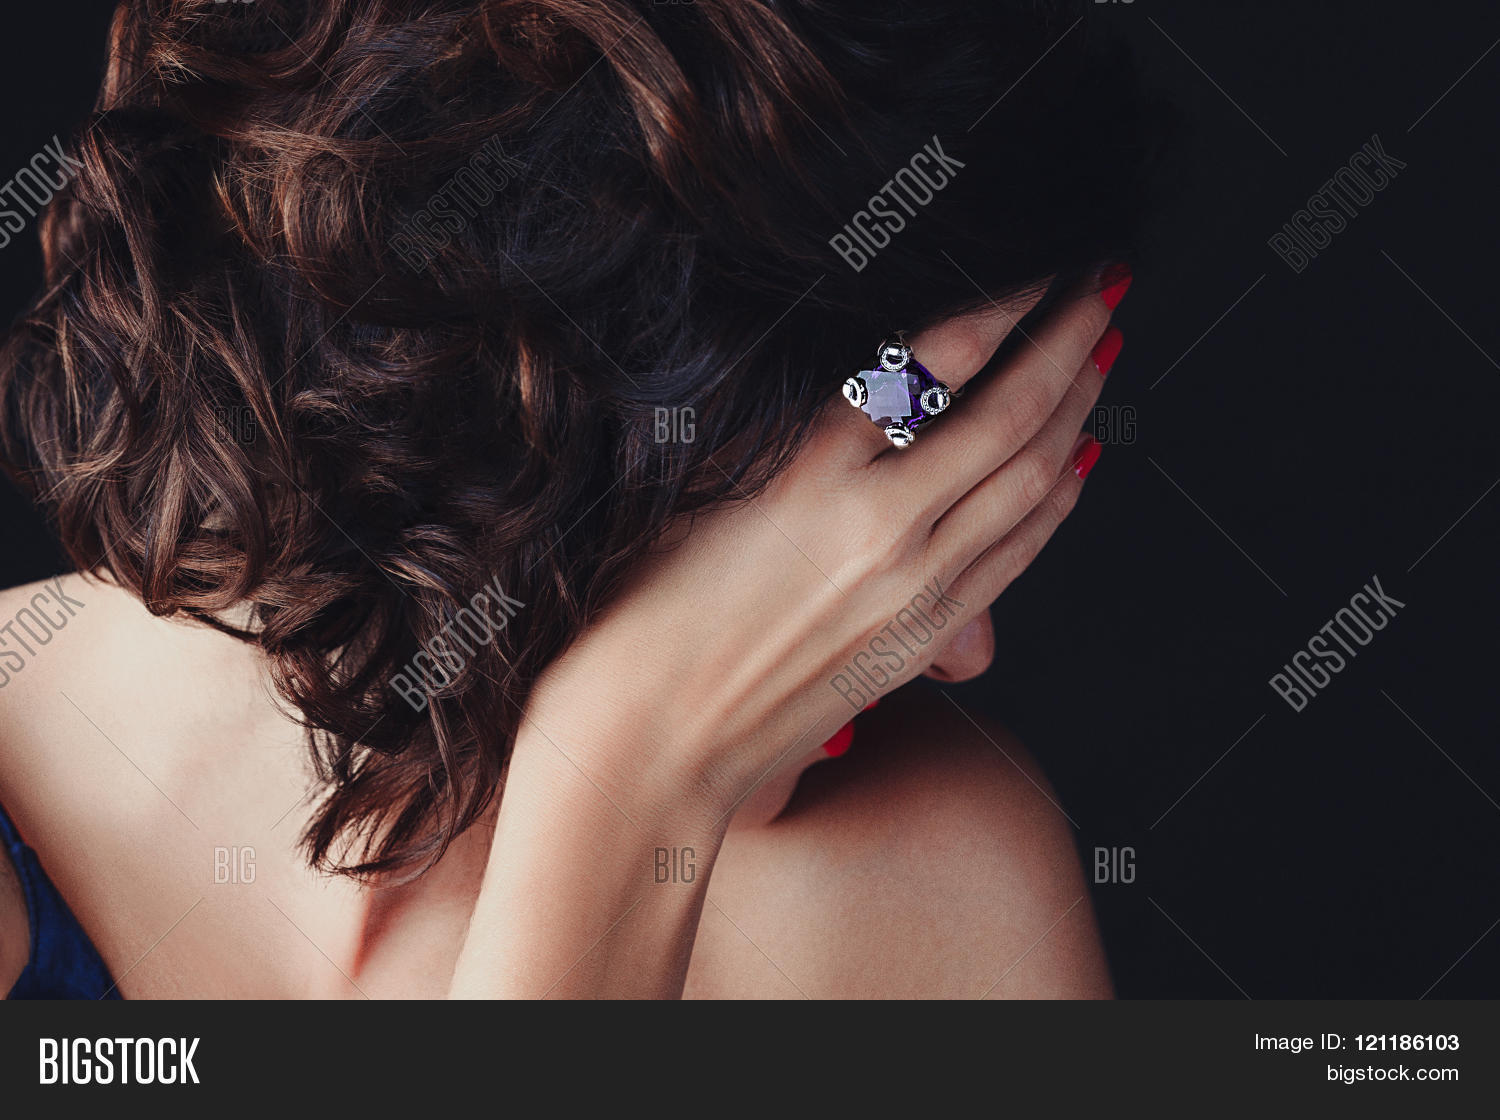 A luxurios stunning woman with gorgeous hair covering her face, her delicate hand with nails painted  red, and a large supphire ring on its index finger.